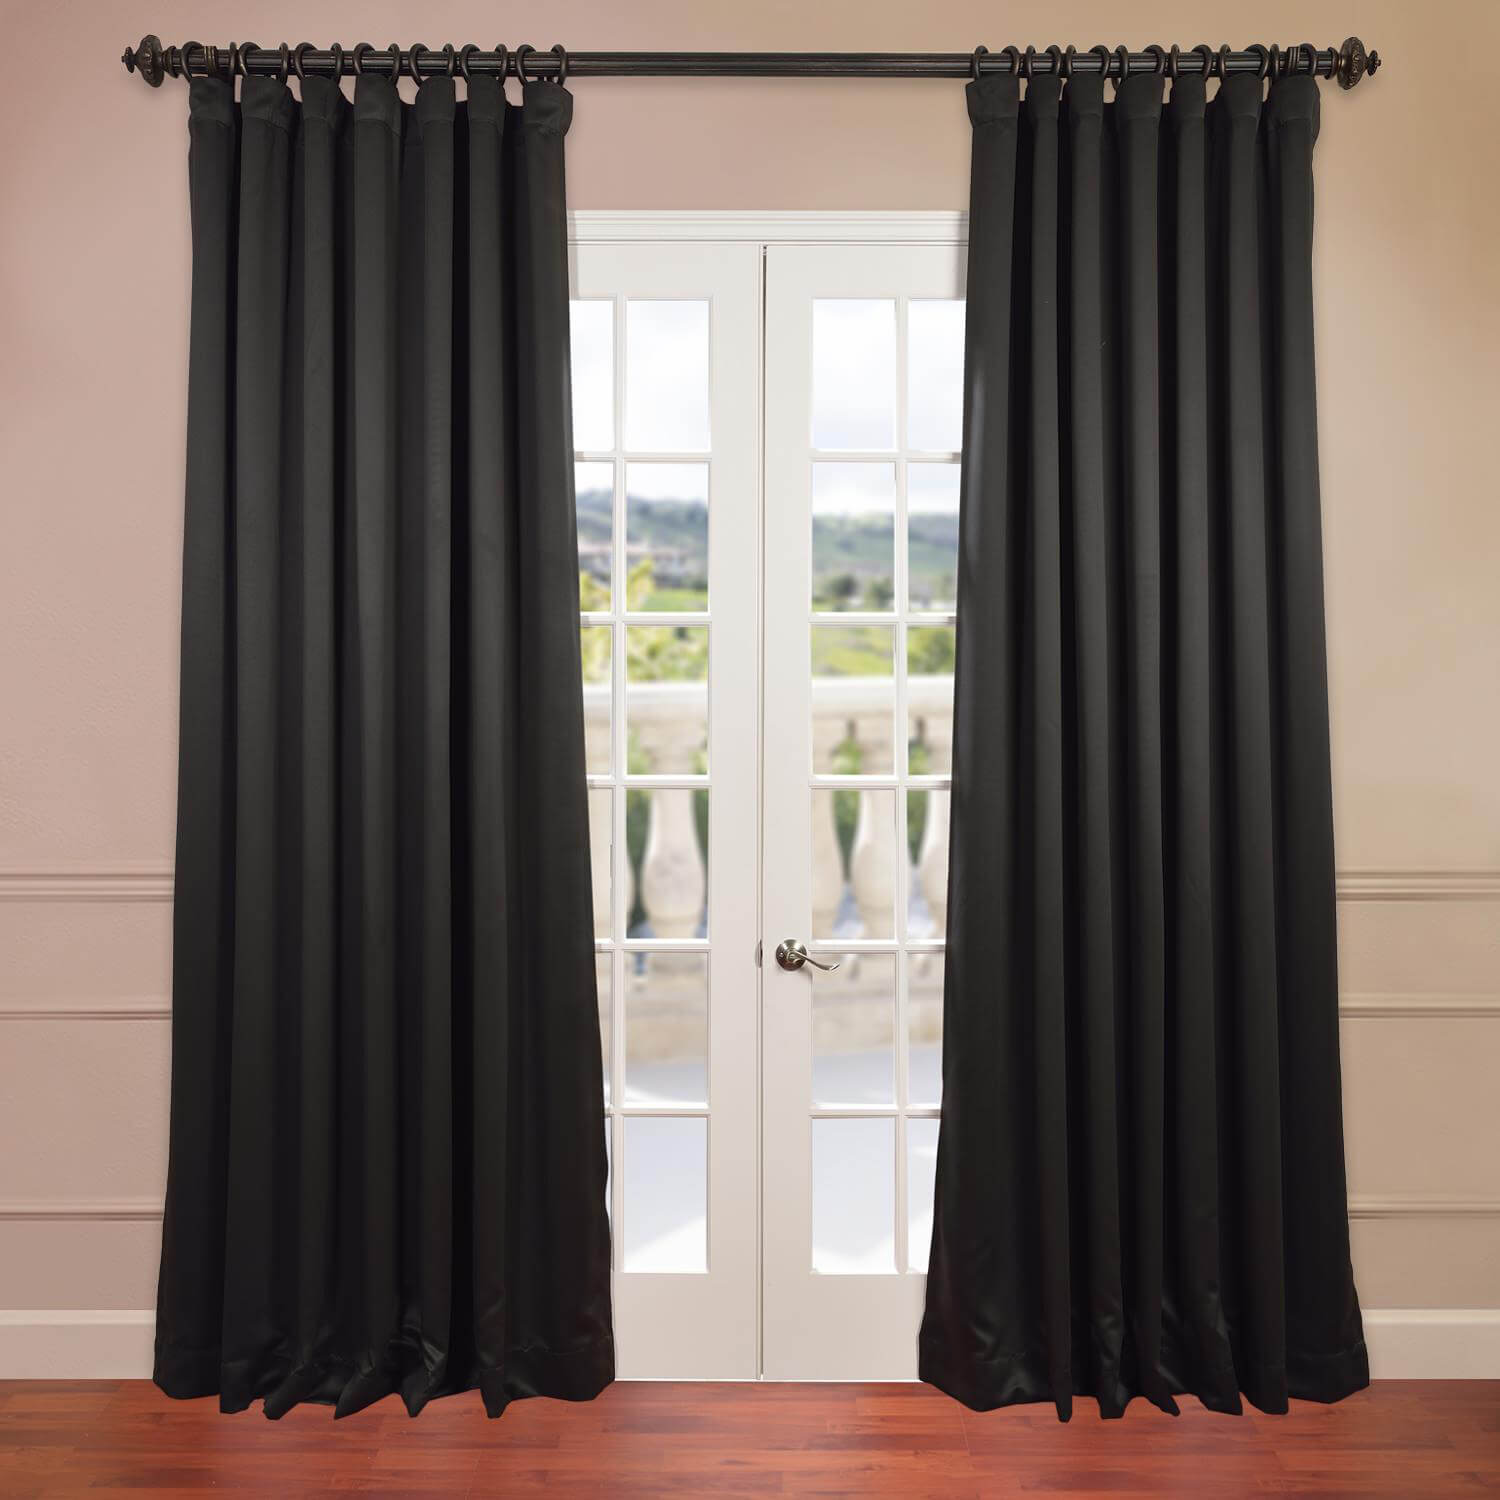 Jet Black Extra Wide Blackout Curtain